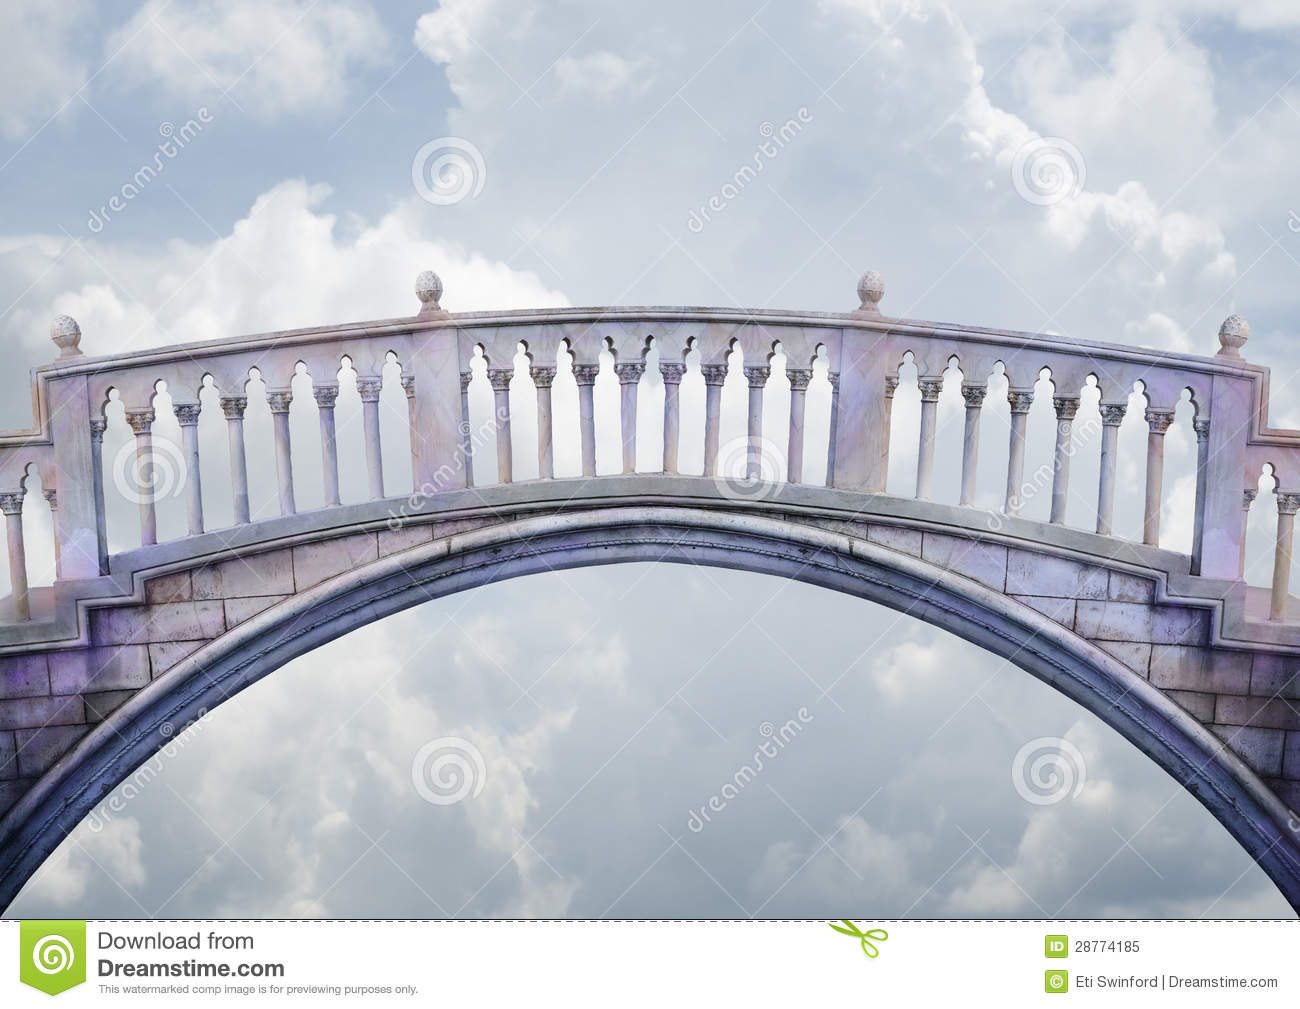 marble columned bridge arches and spans over a light cloudy sky ...